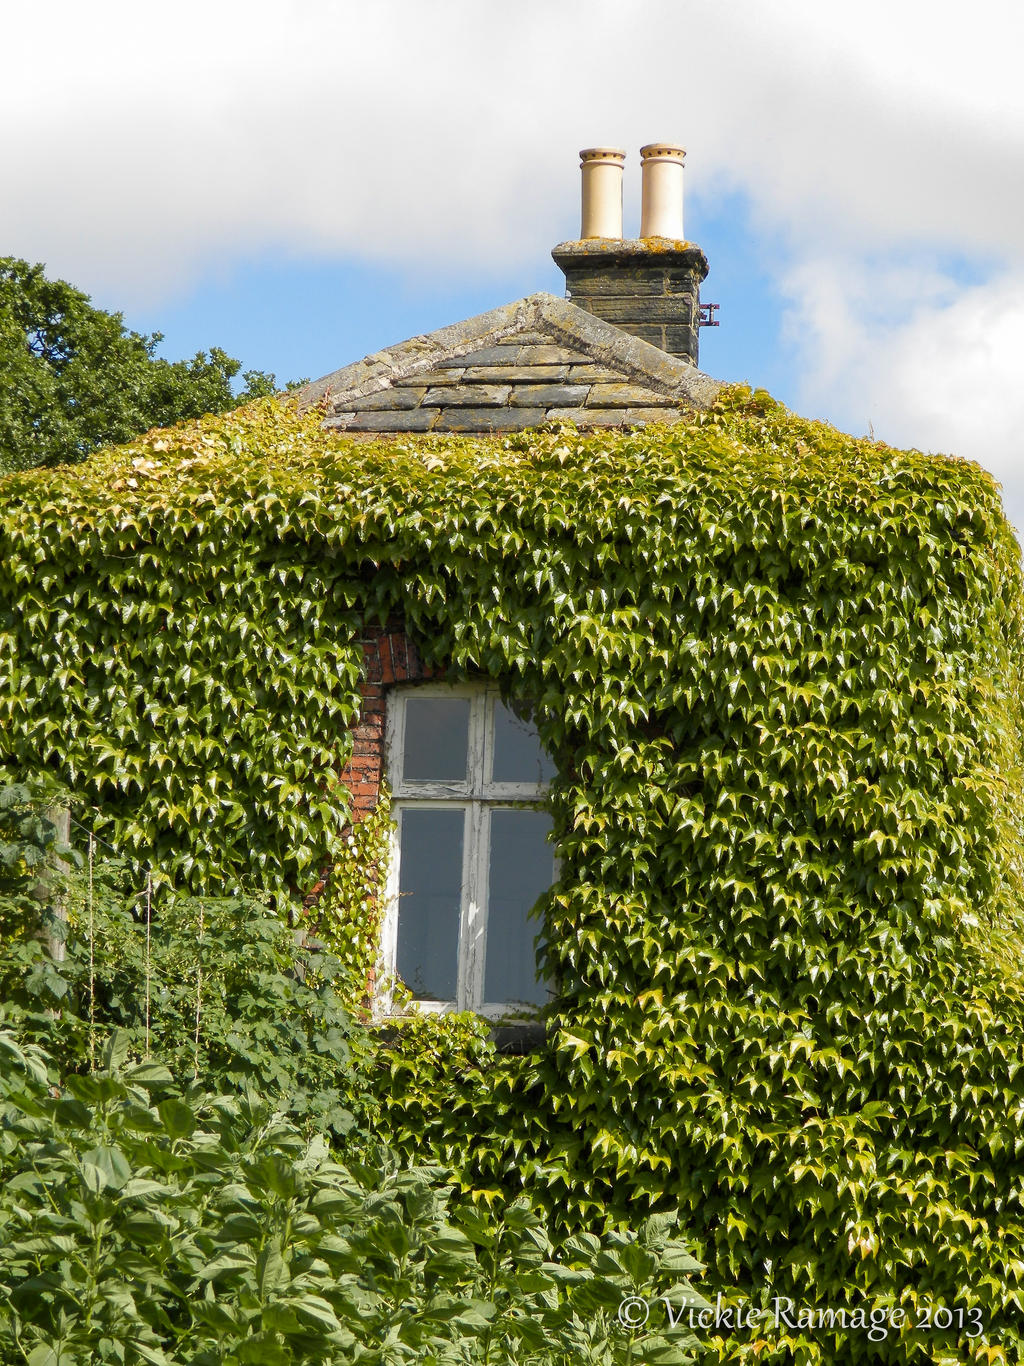 Window harewood house uk by vickiedesigns on deviantart for Harewood house garden design